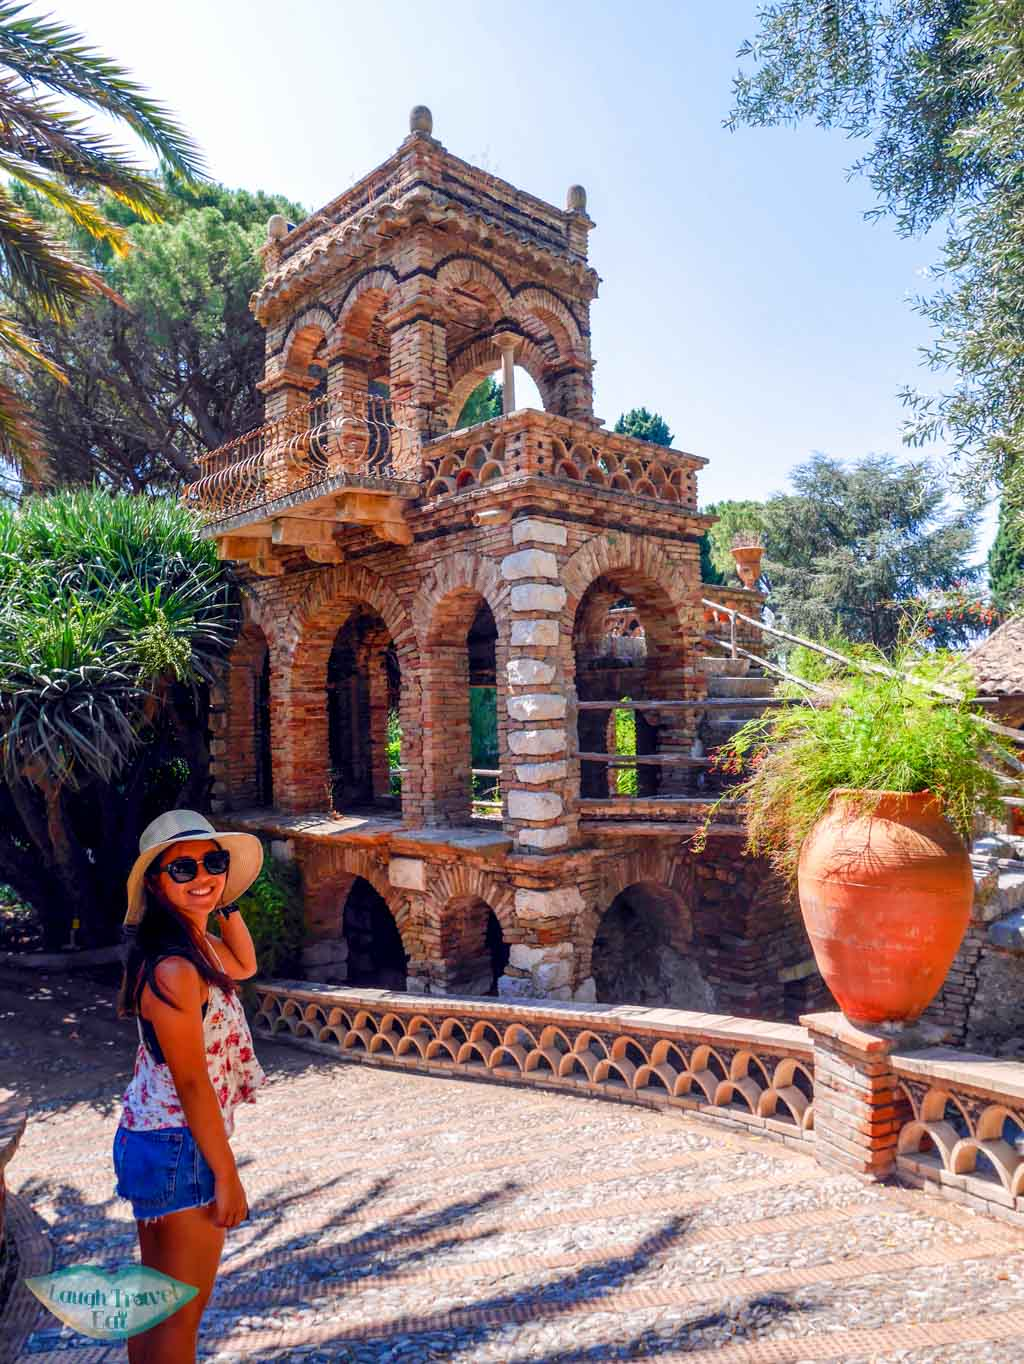 One of the interesting architecture within the communal garden in Taormina | Laugh Travel Eat